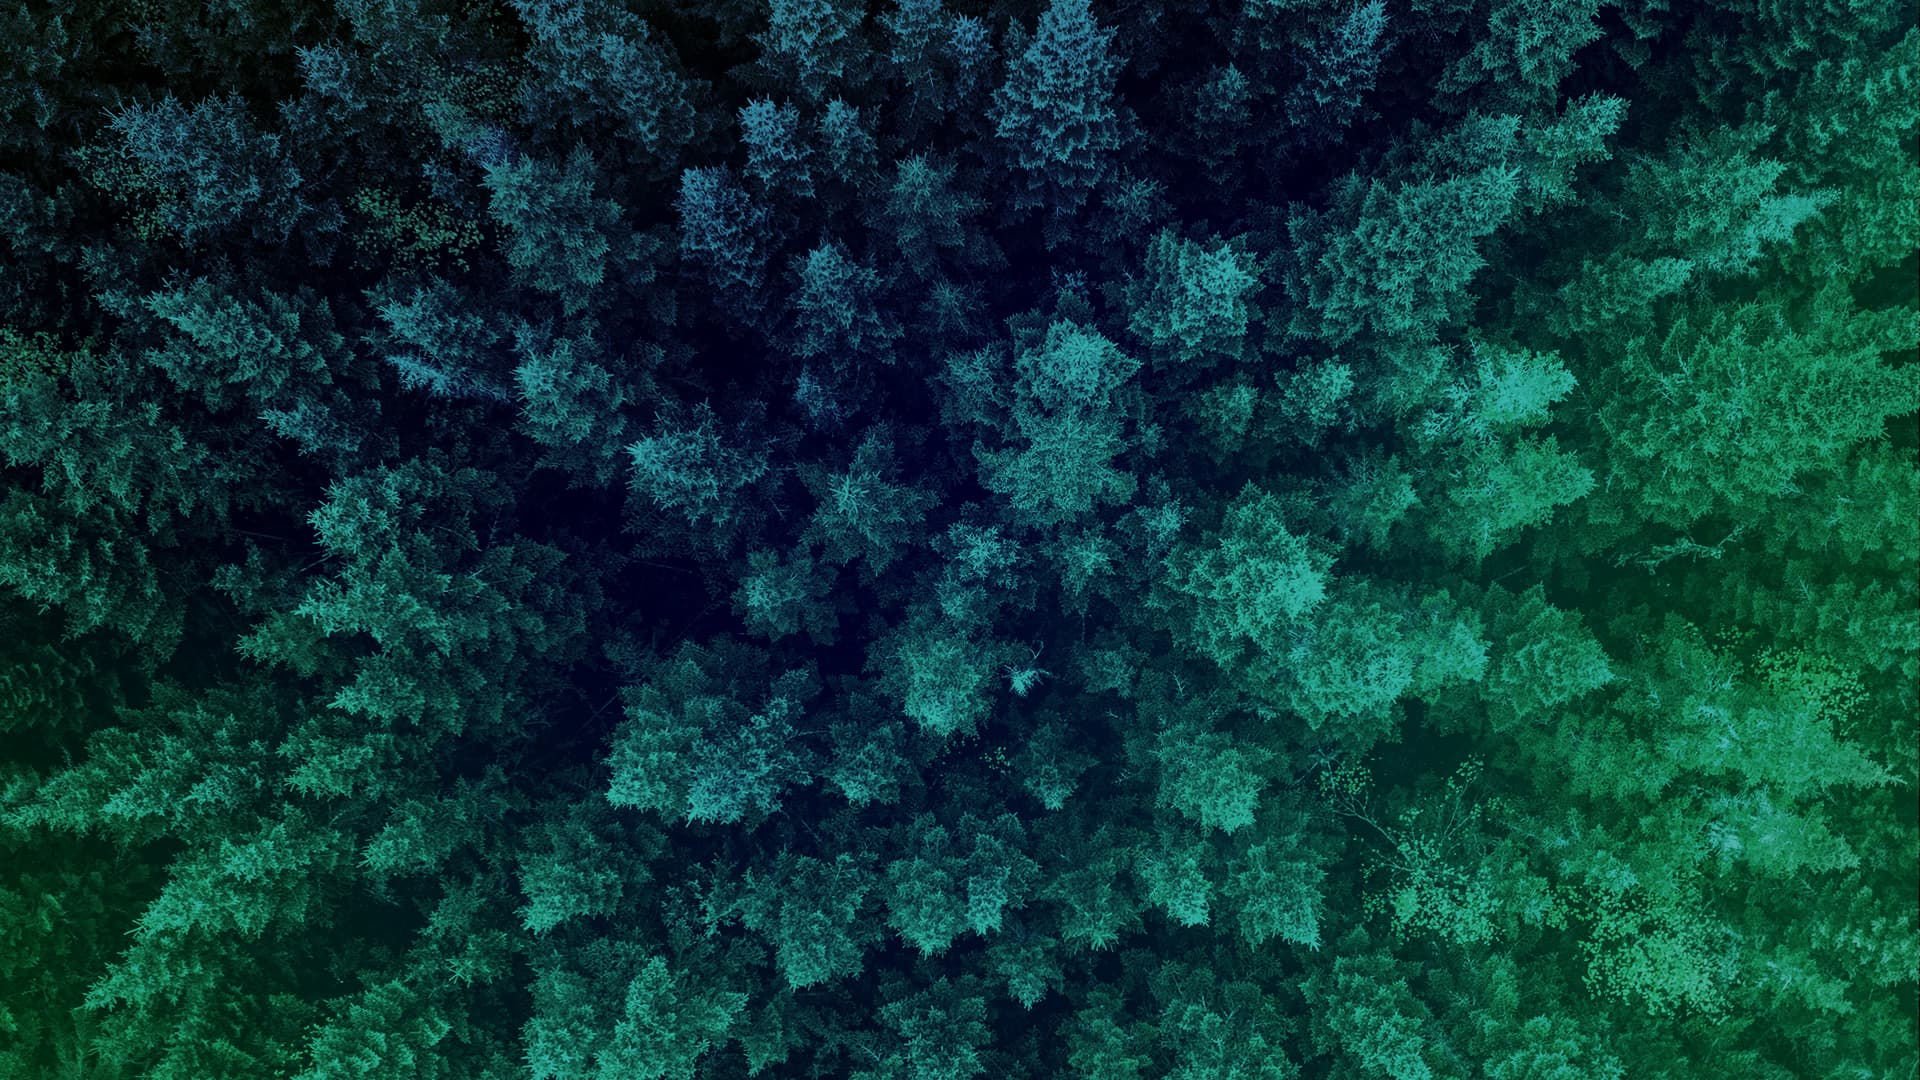 A forest of trees, seen from above.